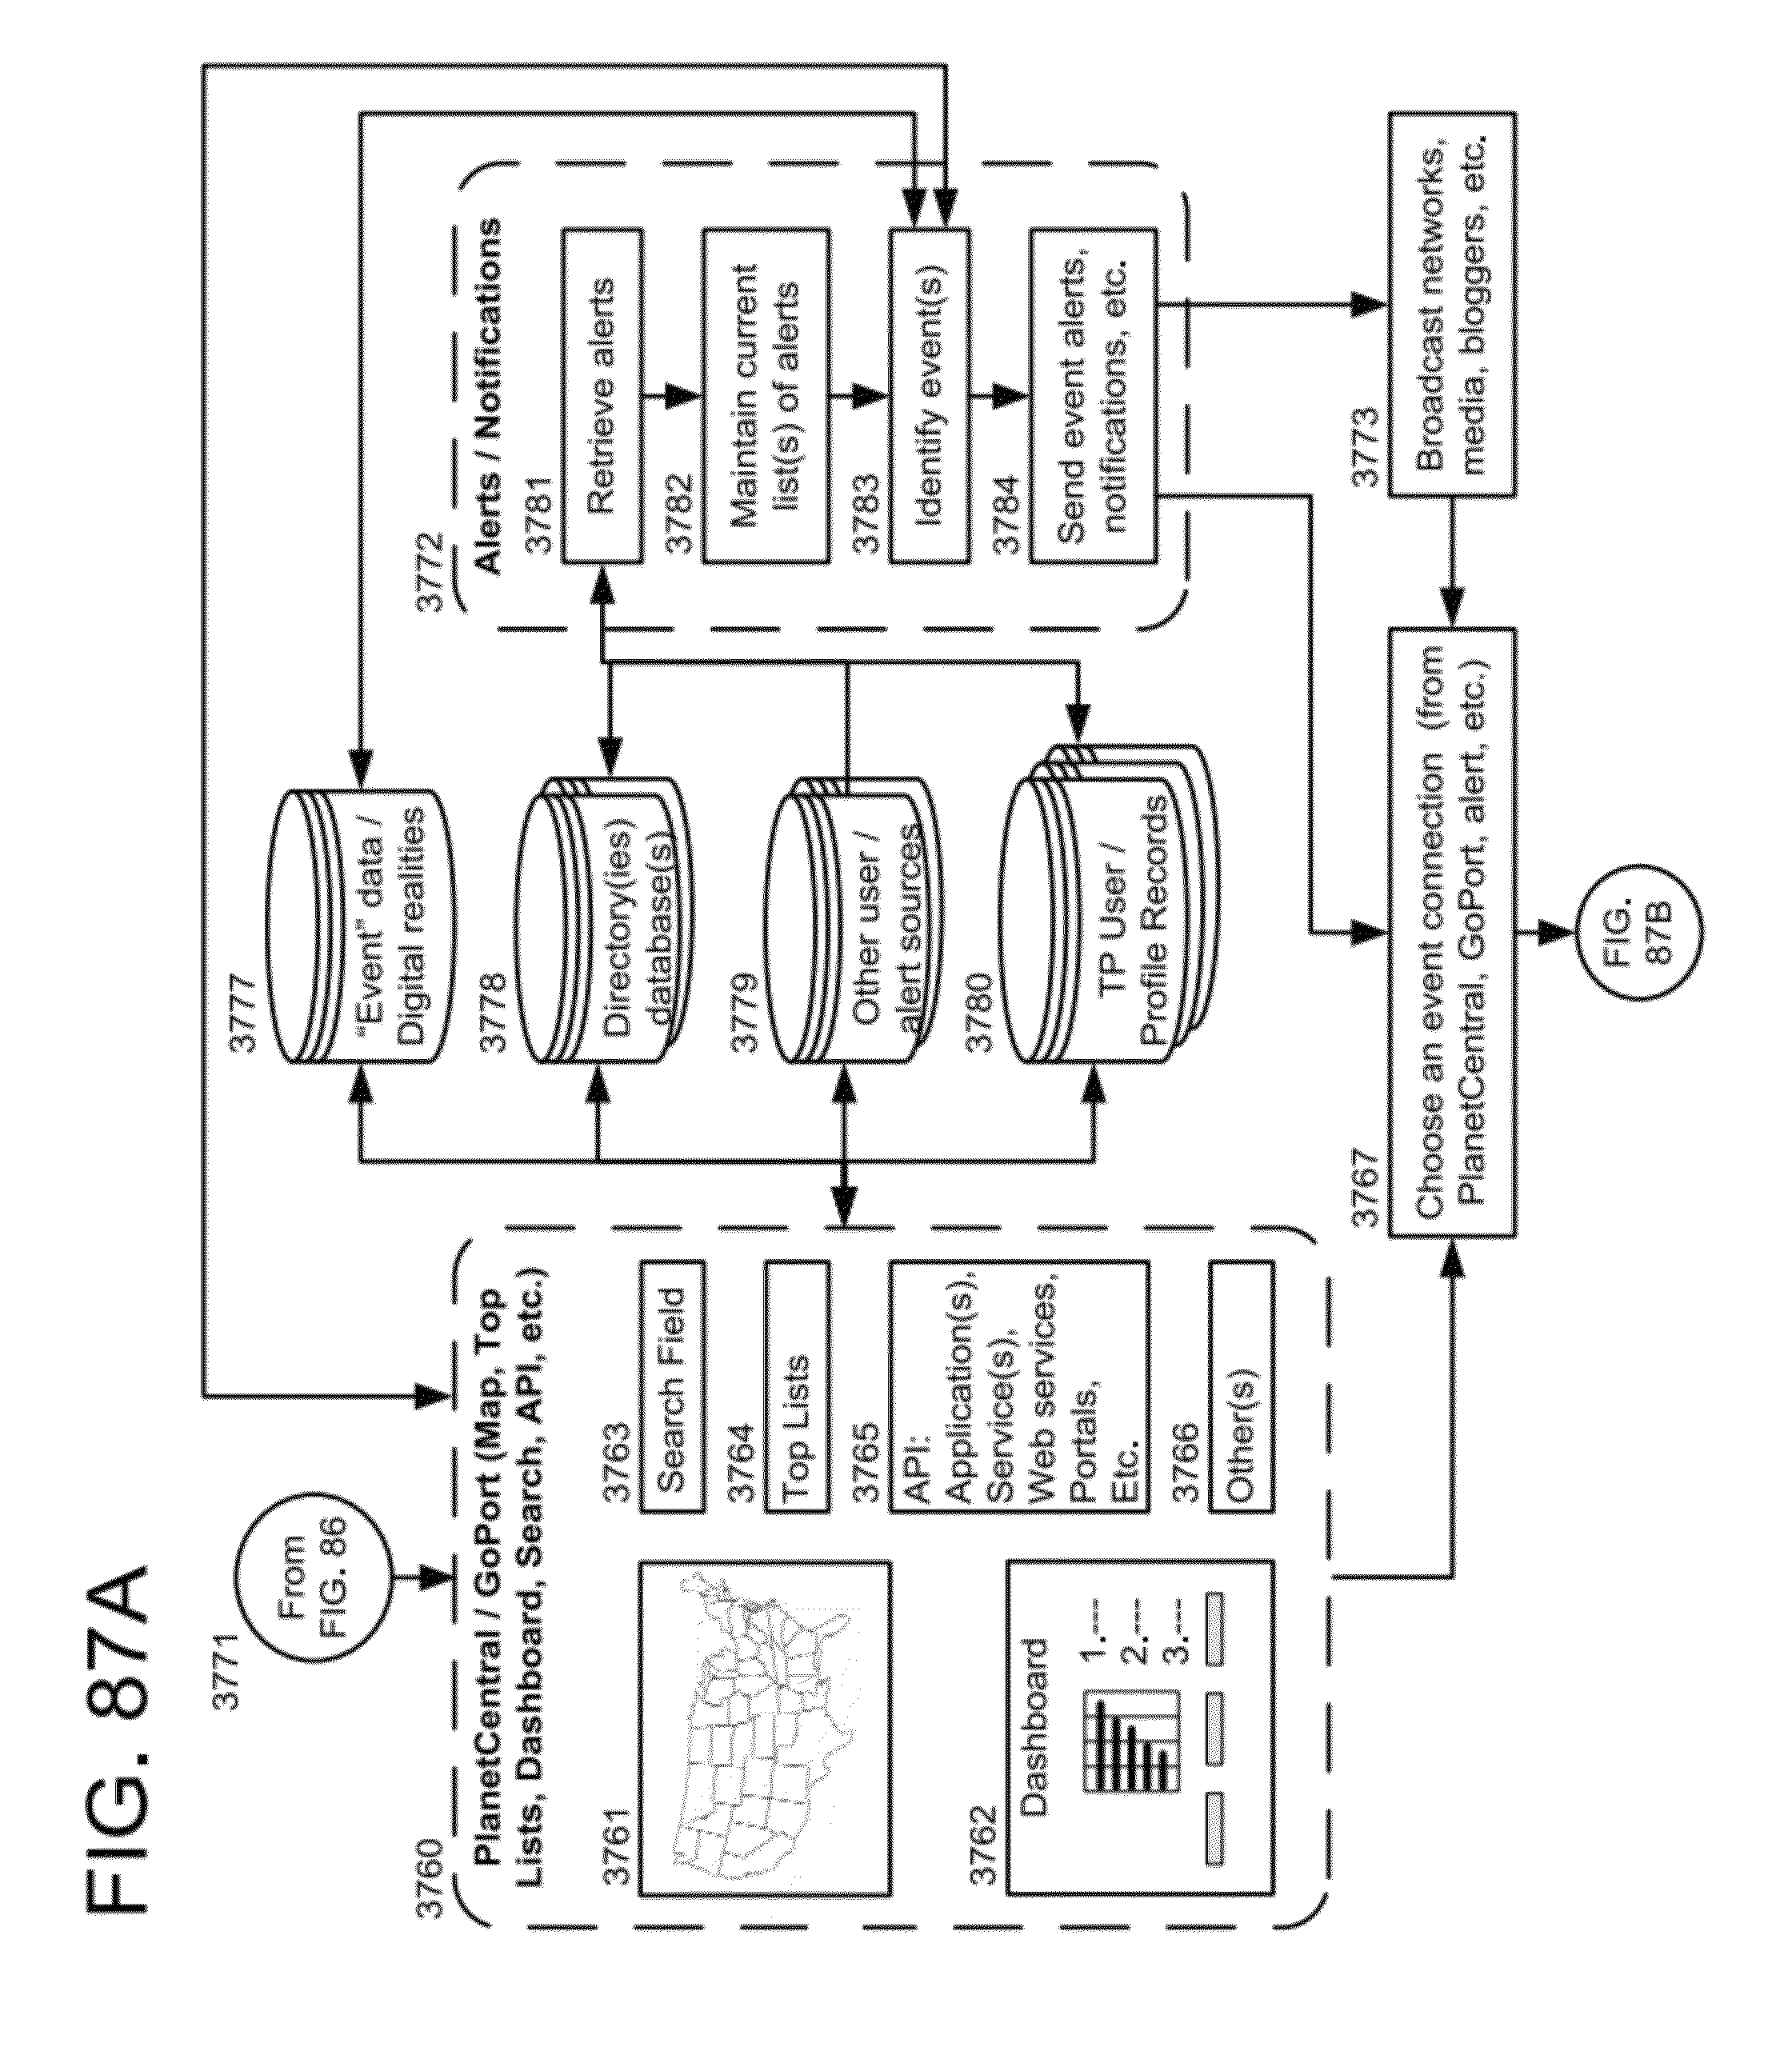 Loadcell Amplifier For Discontinuous Service Circuit Diagram